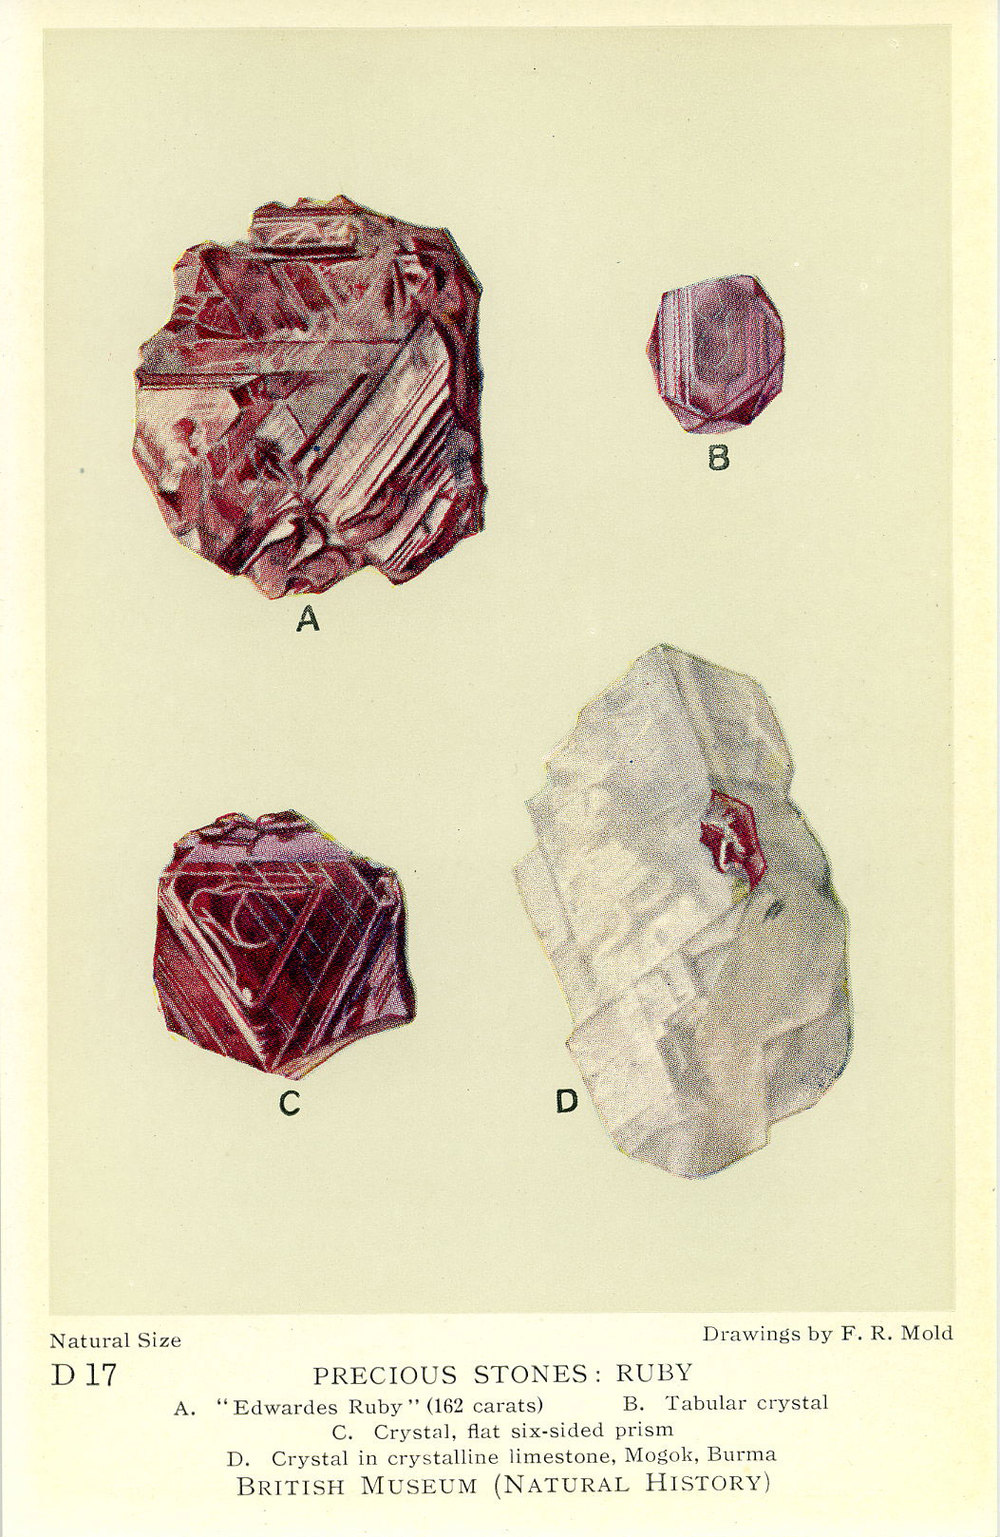 With all the excitement about spinel being added as a new August birthstone, let's not forget that ruby is July's. This card is notable because it does not feature any faceted material. A gap in the institution's holdings, perhaps?